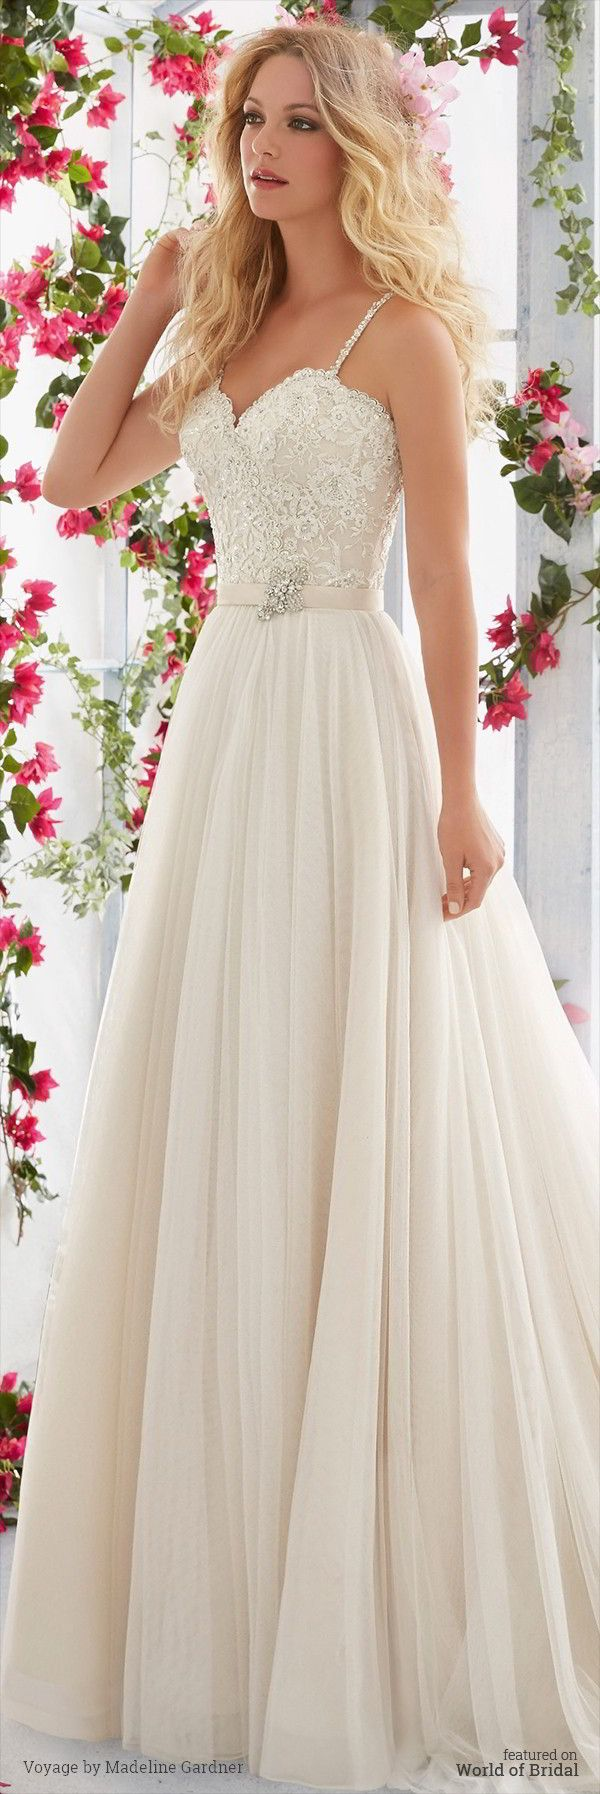 Best 25 spring wedding dresses ideas only on pinterest wedding voyage by madeline gardner spring 2016 wedding dress ombrellifo Image collections